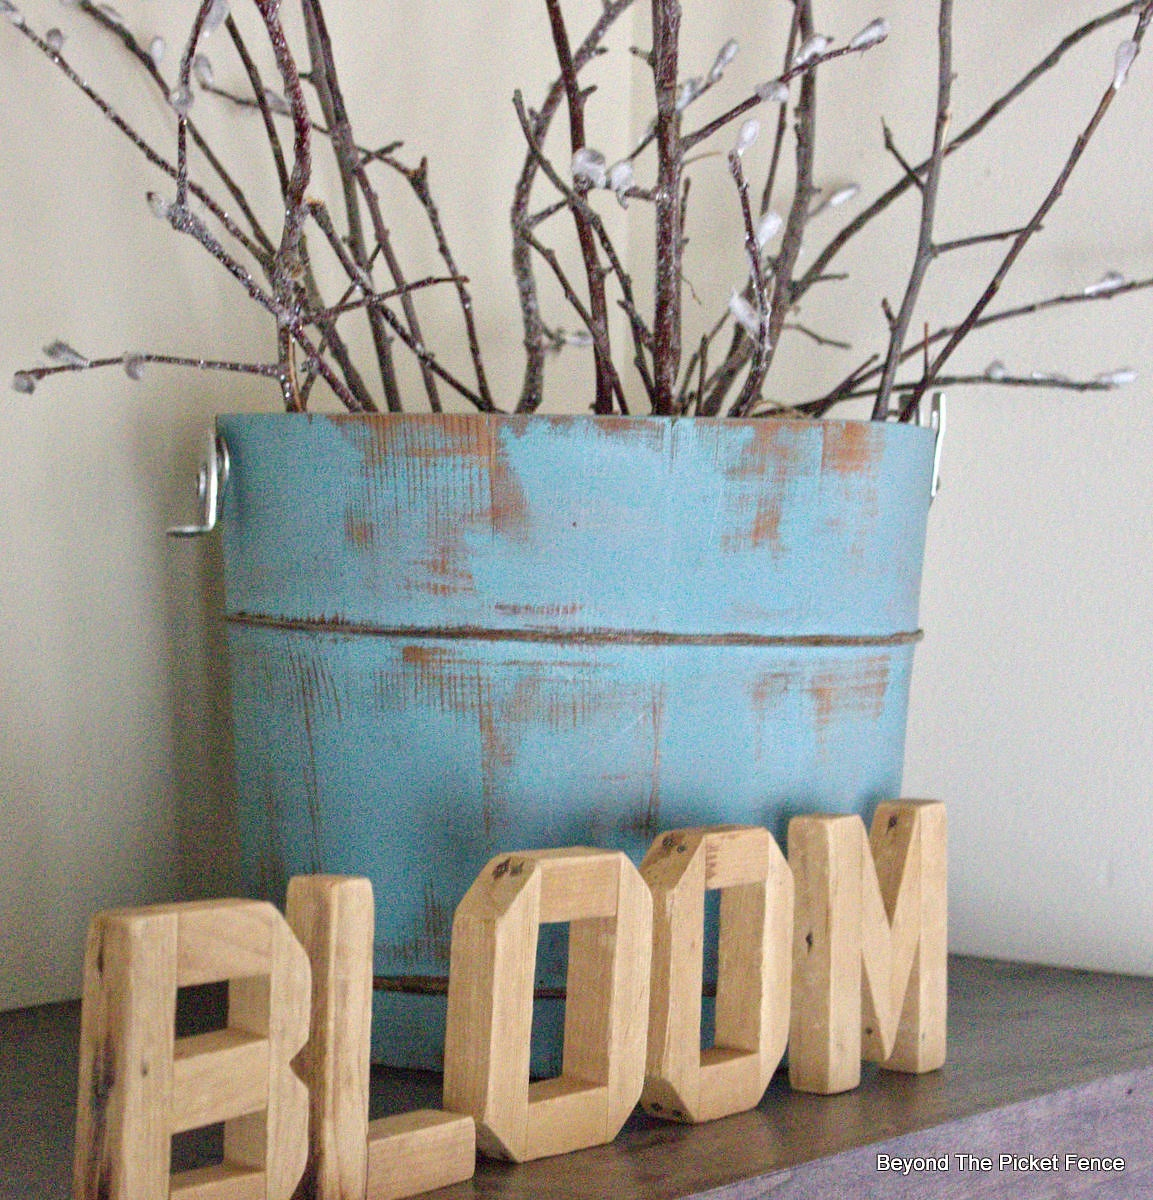 bloom, old bucket, spring, mantel, decor, vintage, shabby, repurposed, DIY, http://bec4-beyondthepicketfence.blogspot.com/2015/03/bestofdiy-spring-pussy-willows.html